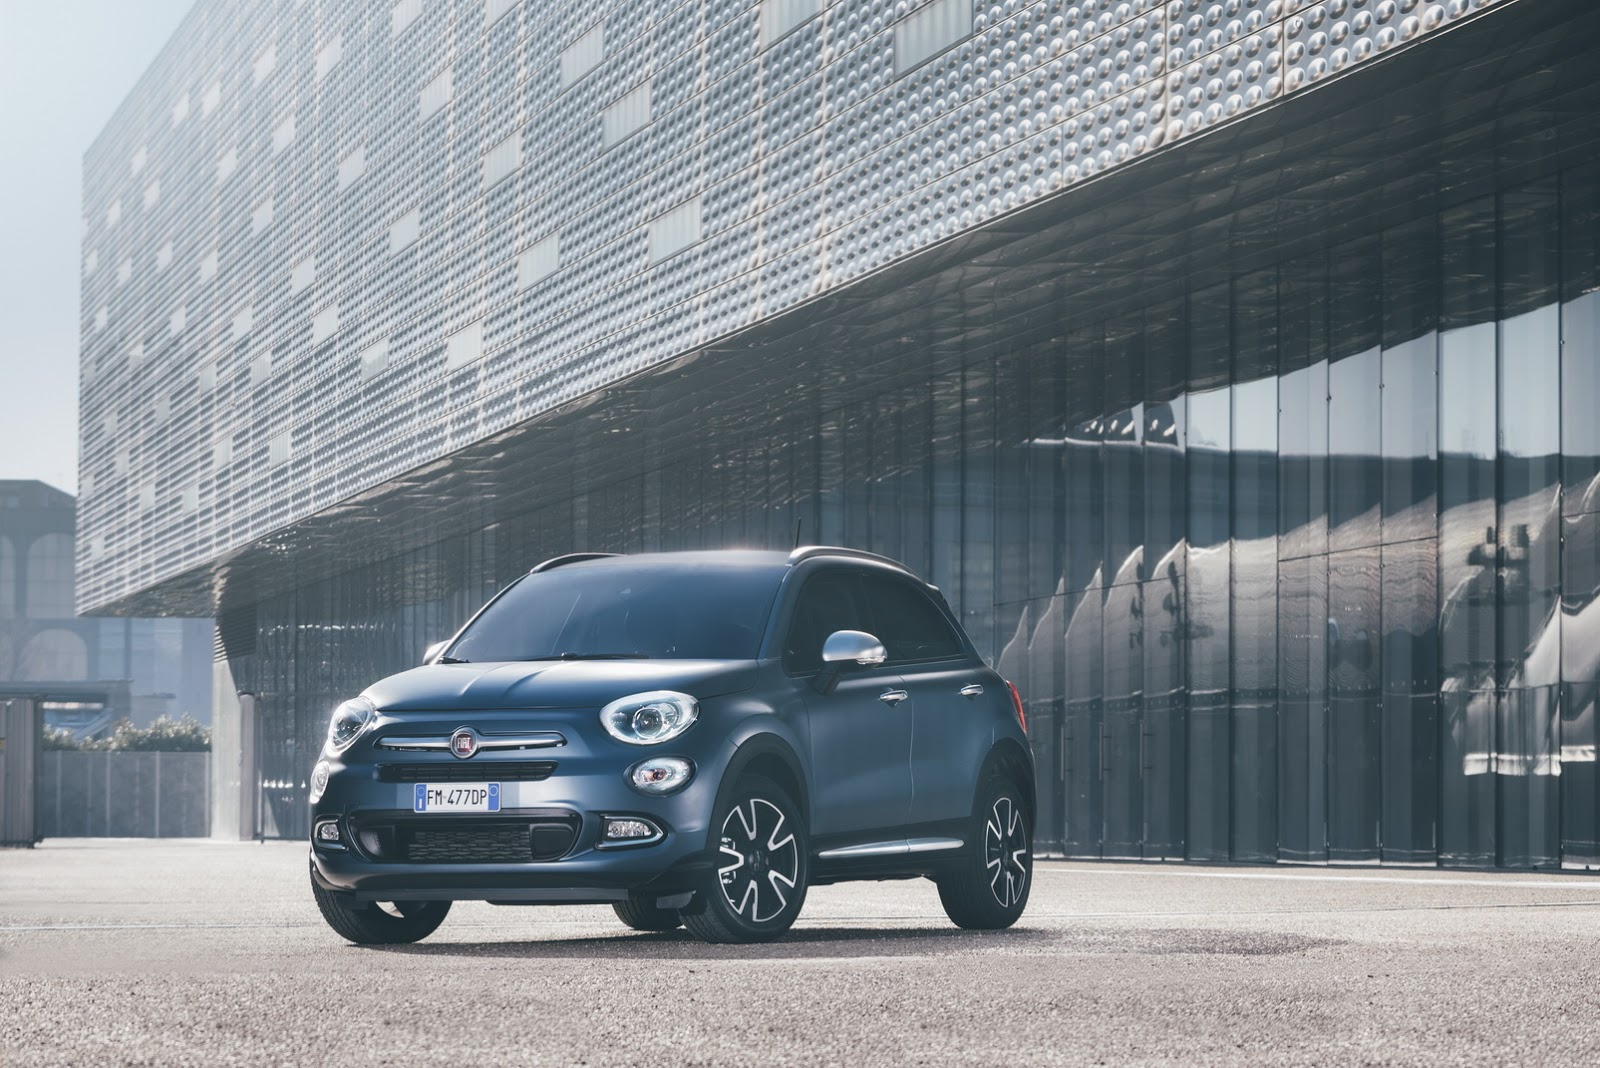 fiat 500 500l and 500x mirror edition are more connected autoevolution. Black Bedroom Furniture Sets. Home Design Ideas